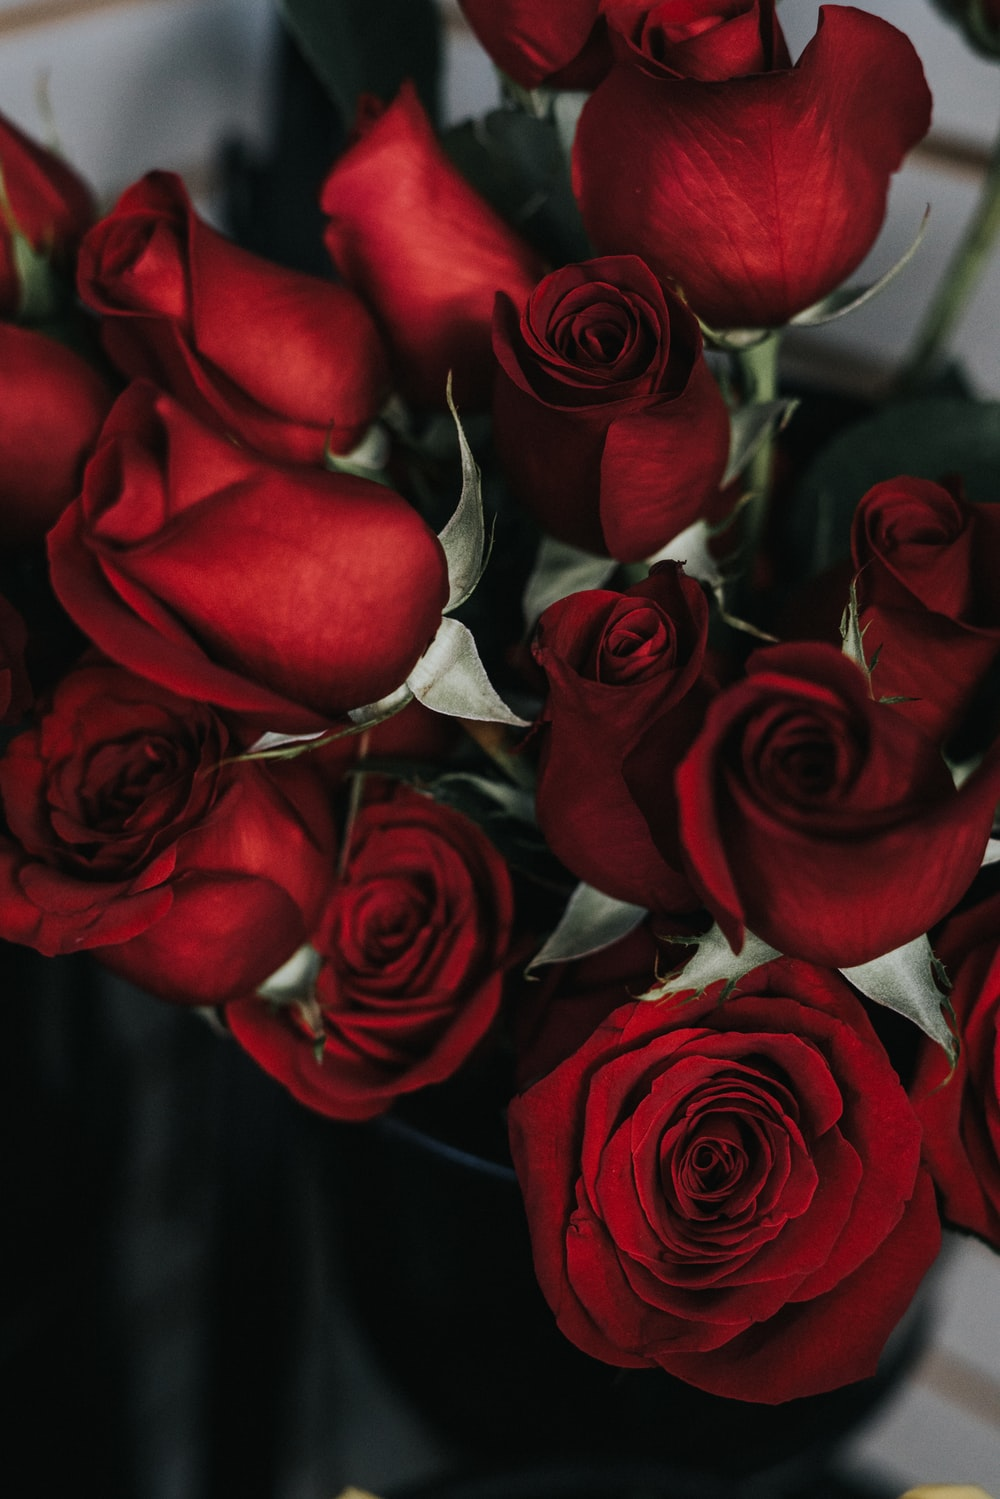 350 Romantic Rose Pictures Hq Download Free Images On Unsplash